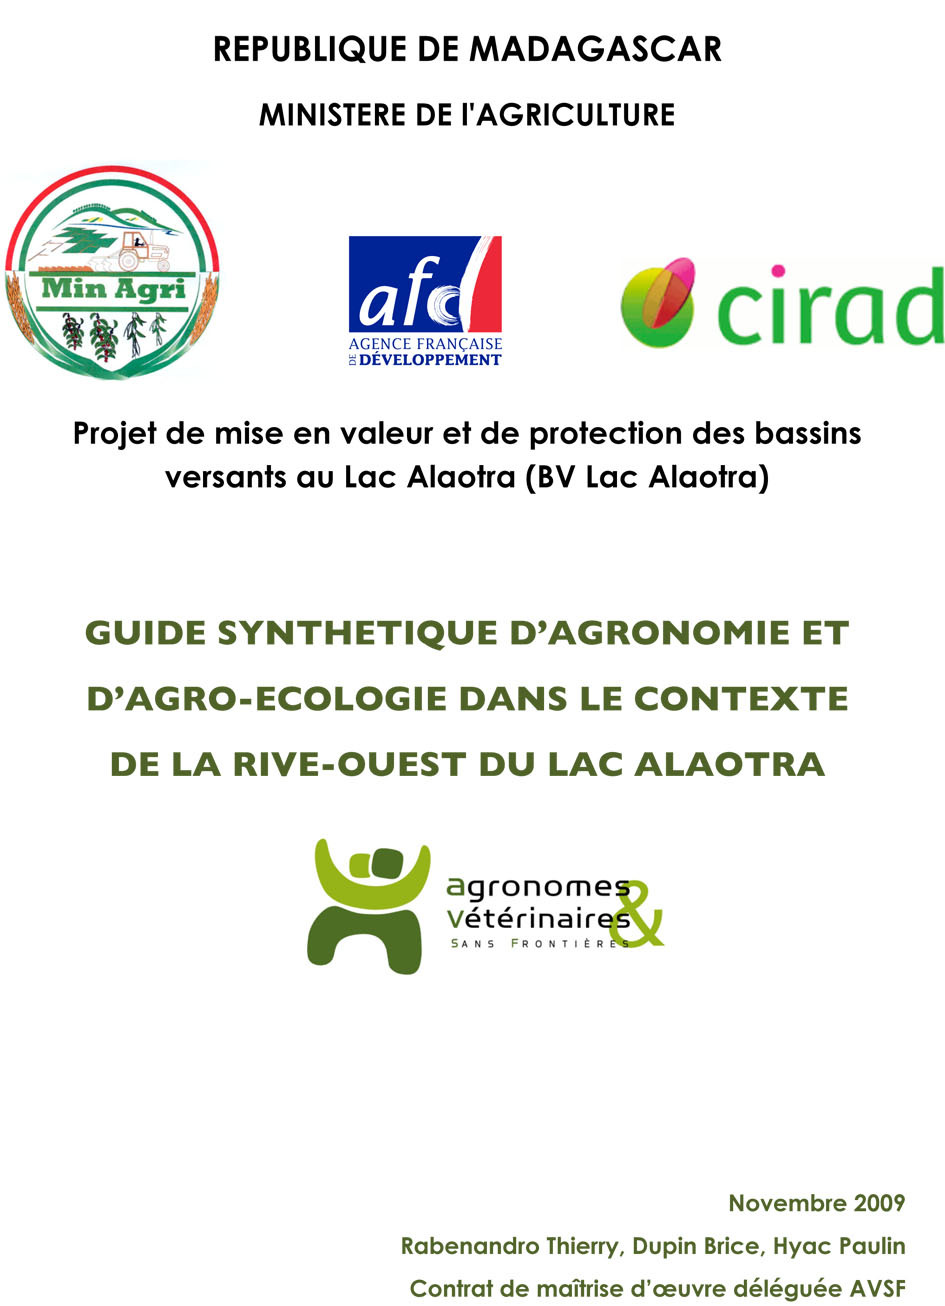 PDF Preview - Guide synthétique d'agroécologie au Lac Alaotra (Madagascar)